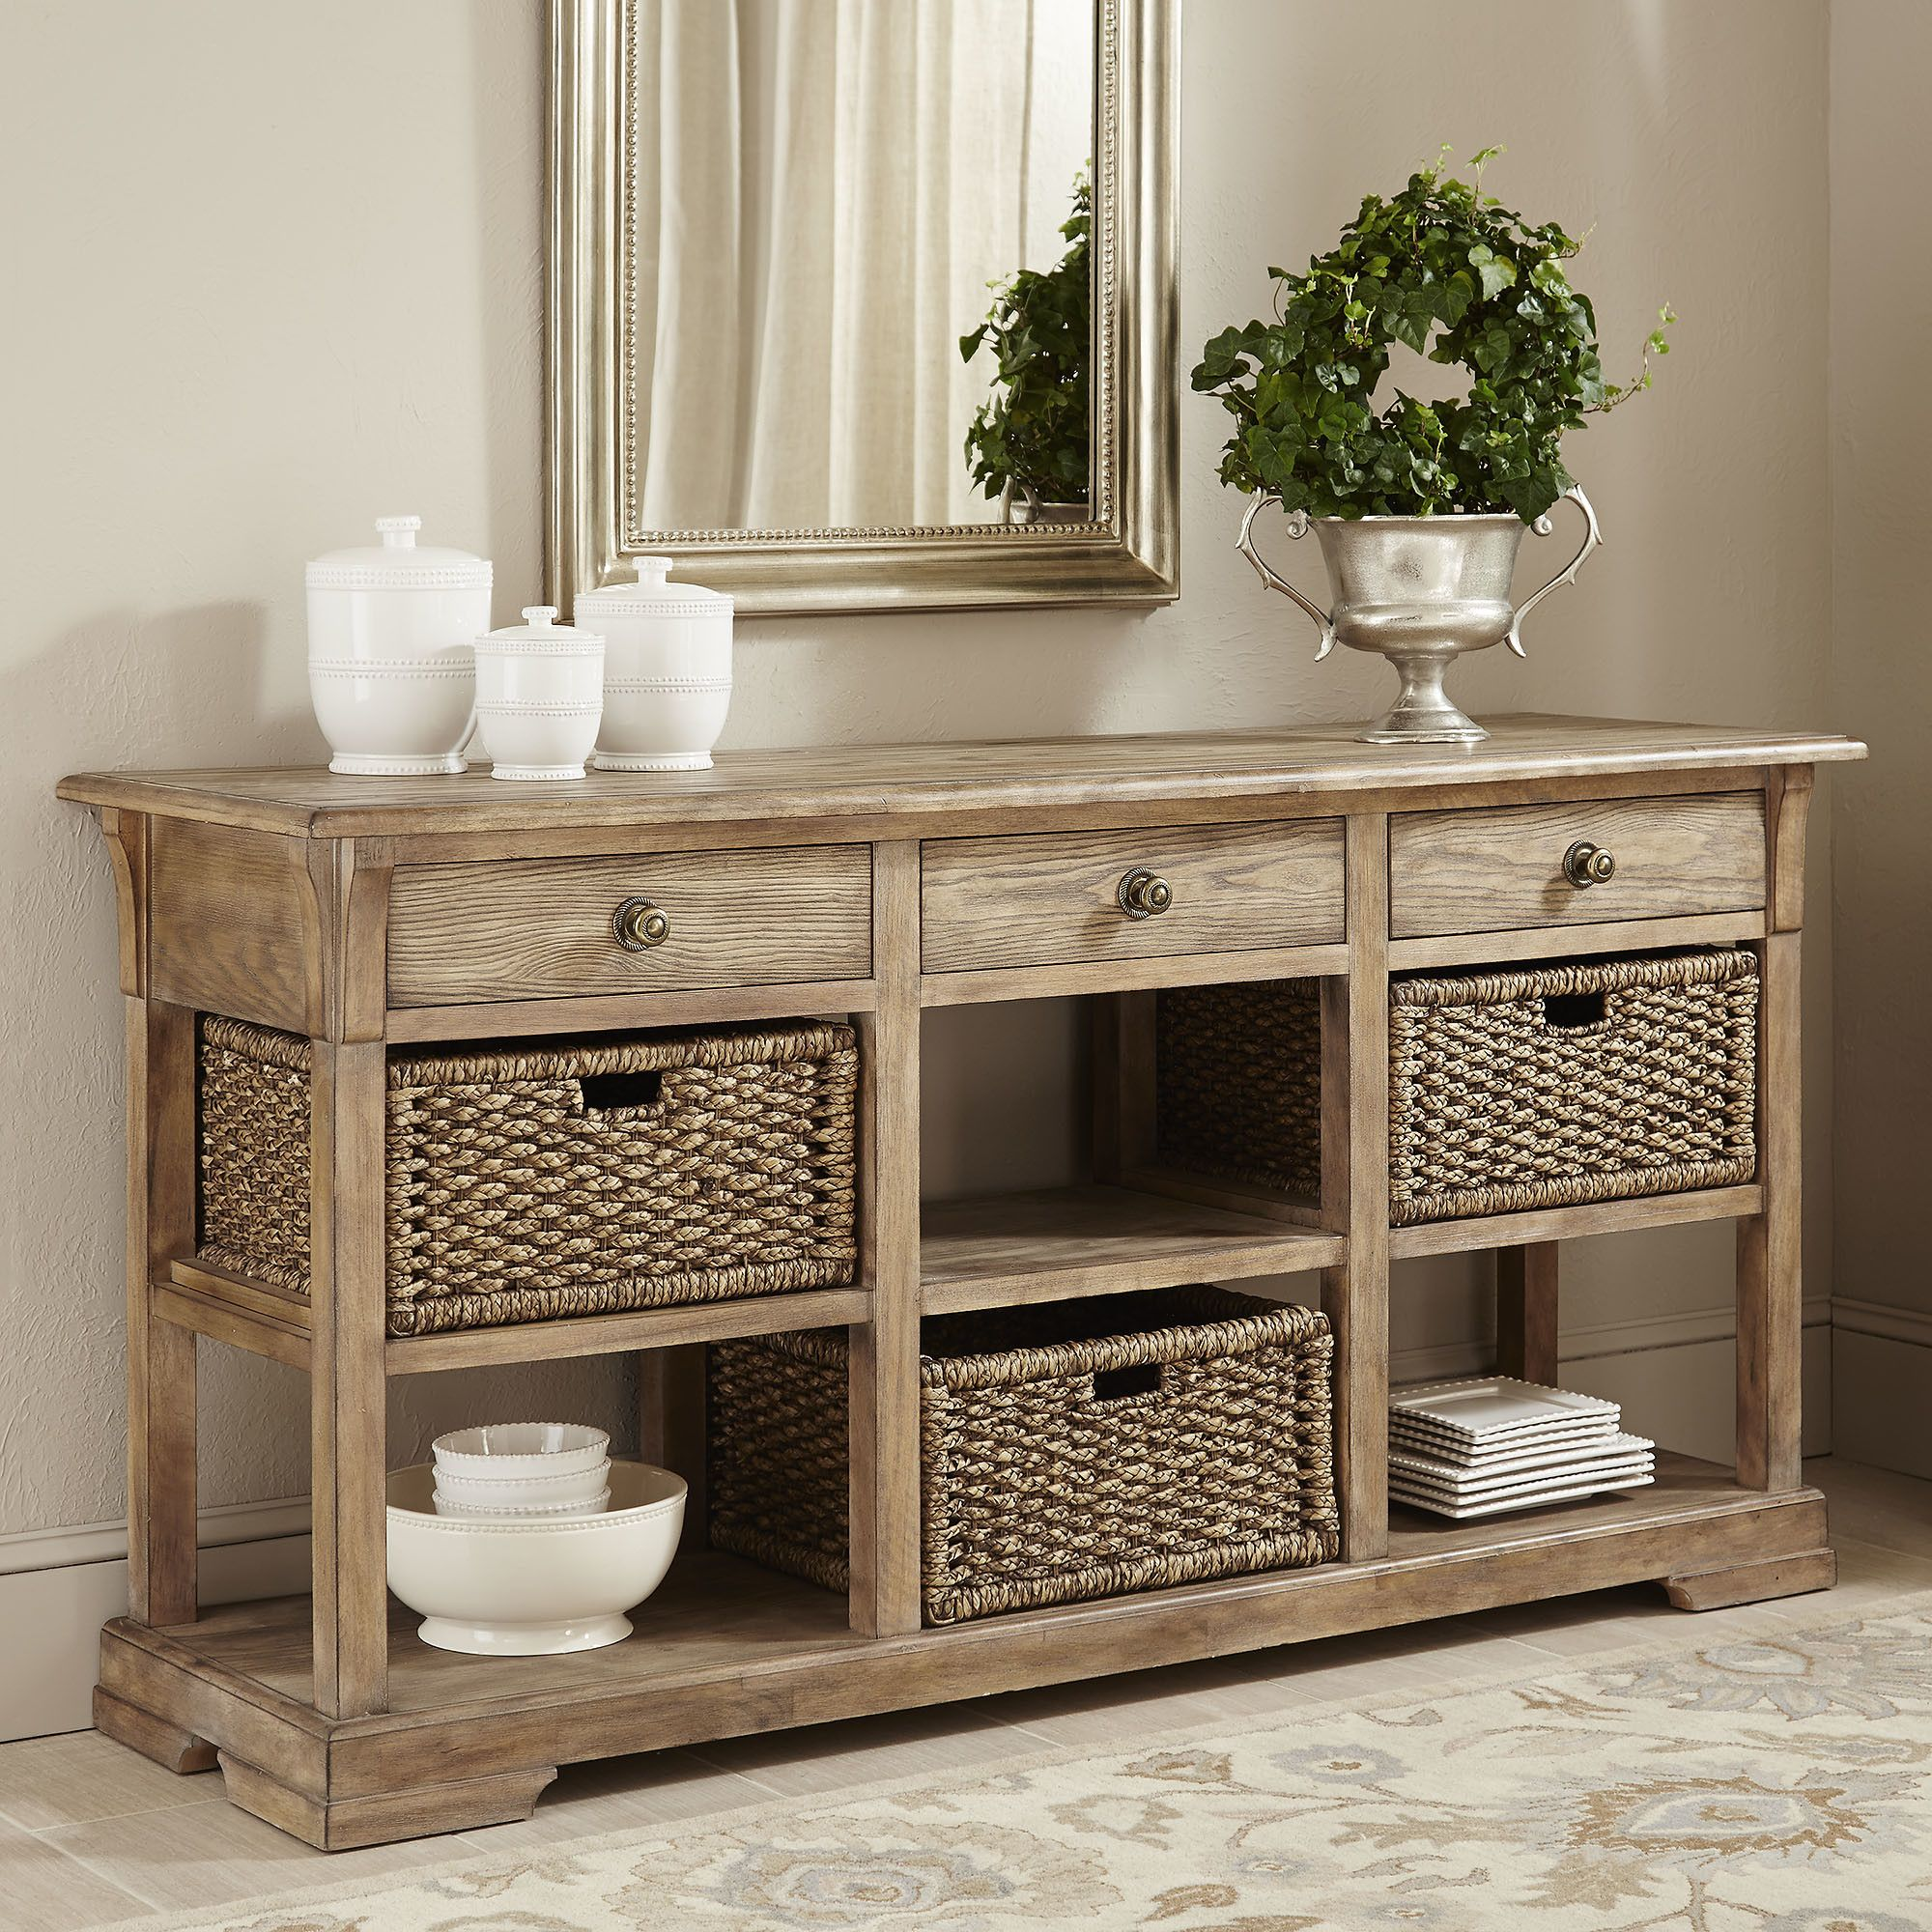 Birch lane hutchinson console table with images